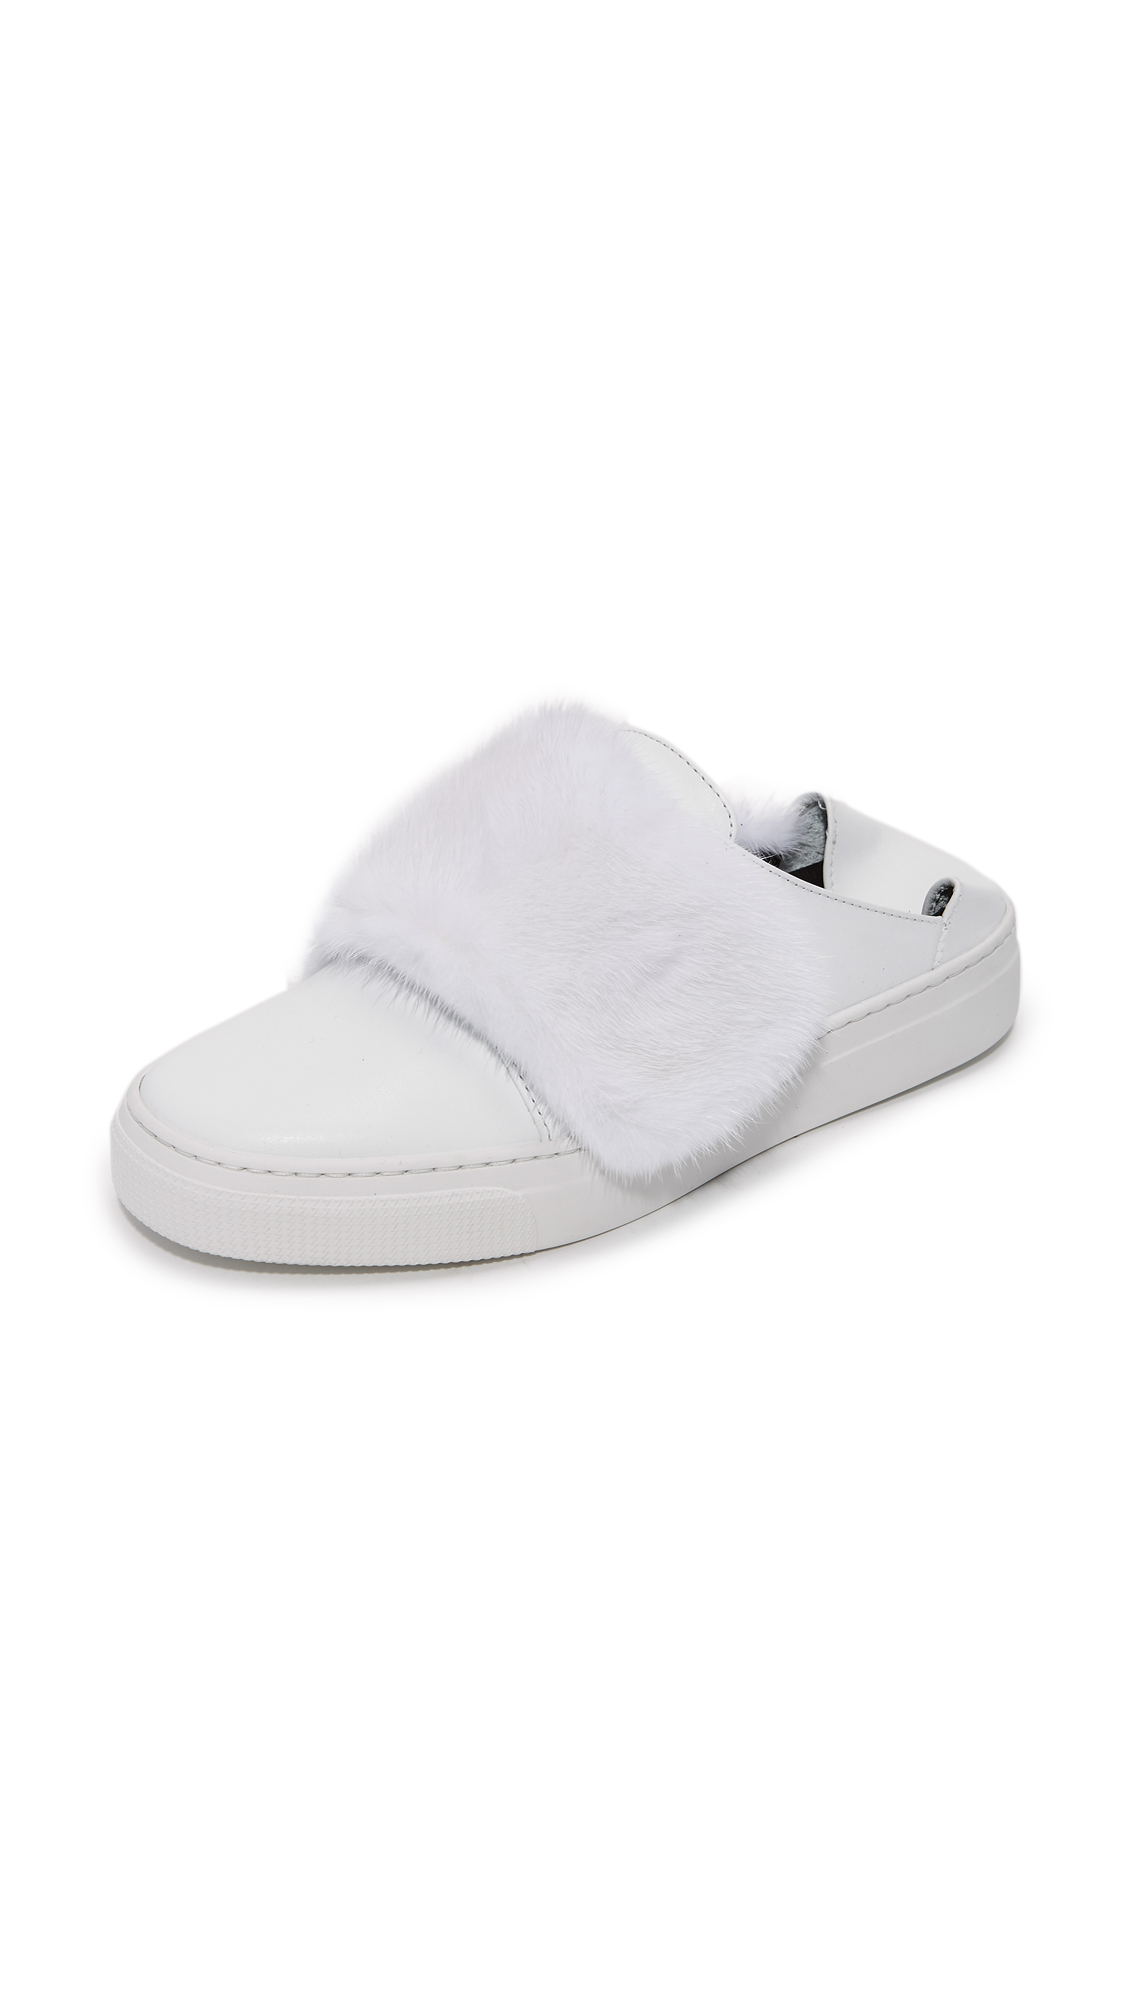 ZCD Montreal Max Slide Sneakers - Bianco